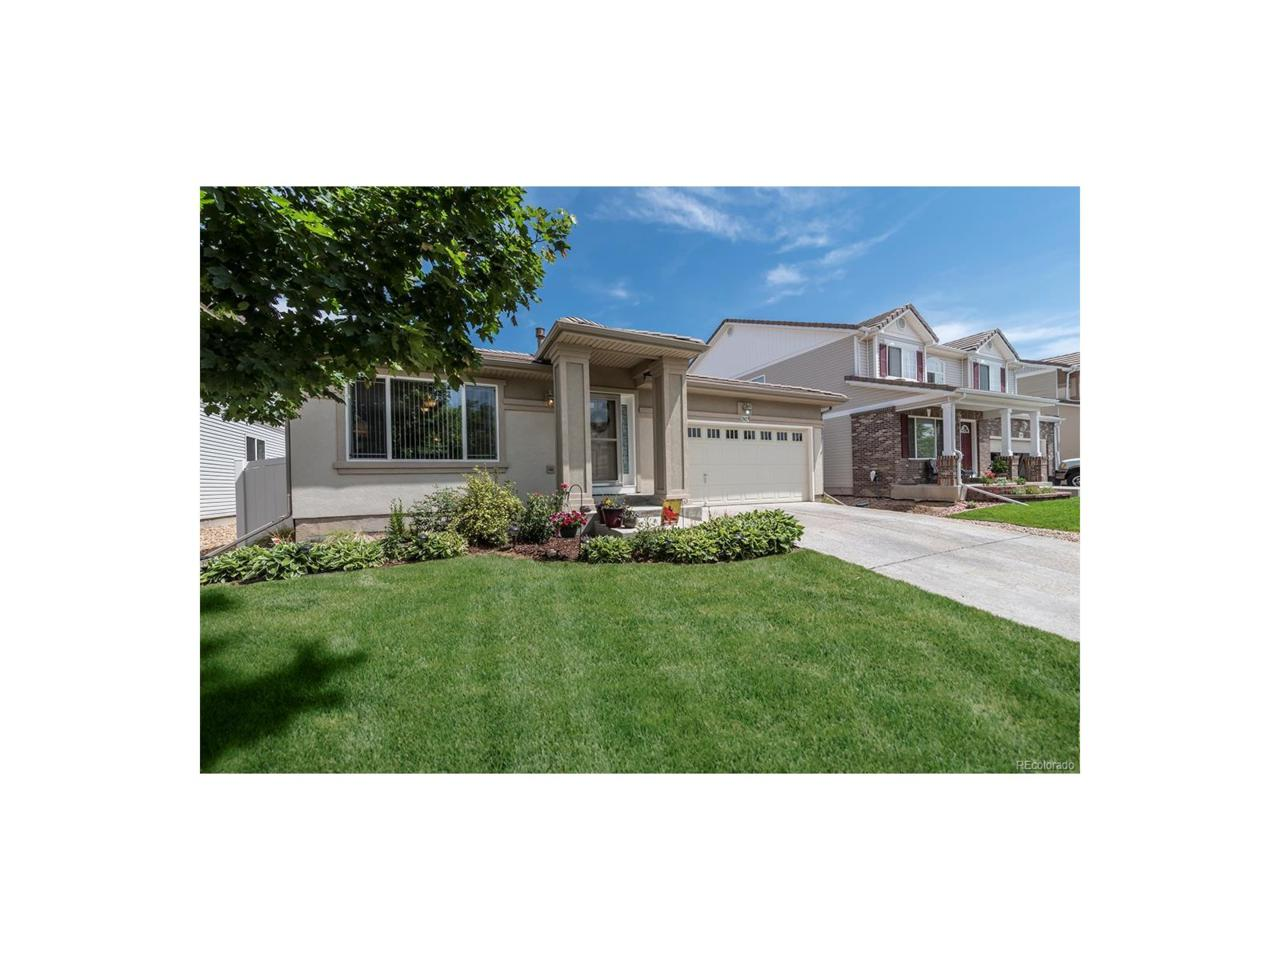 21427 E 53rd Place, Denver, CO 80249 (MLS #4628844) :: 8z Real Estate